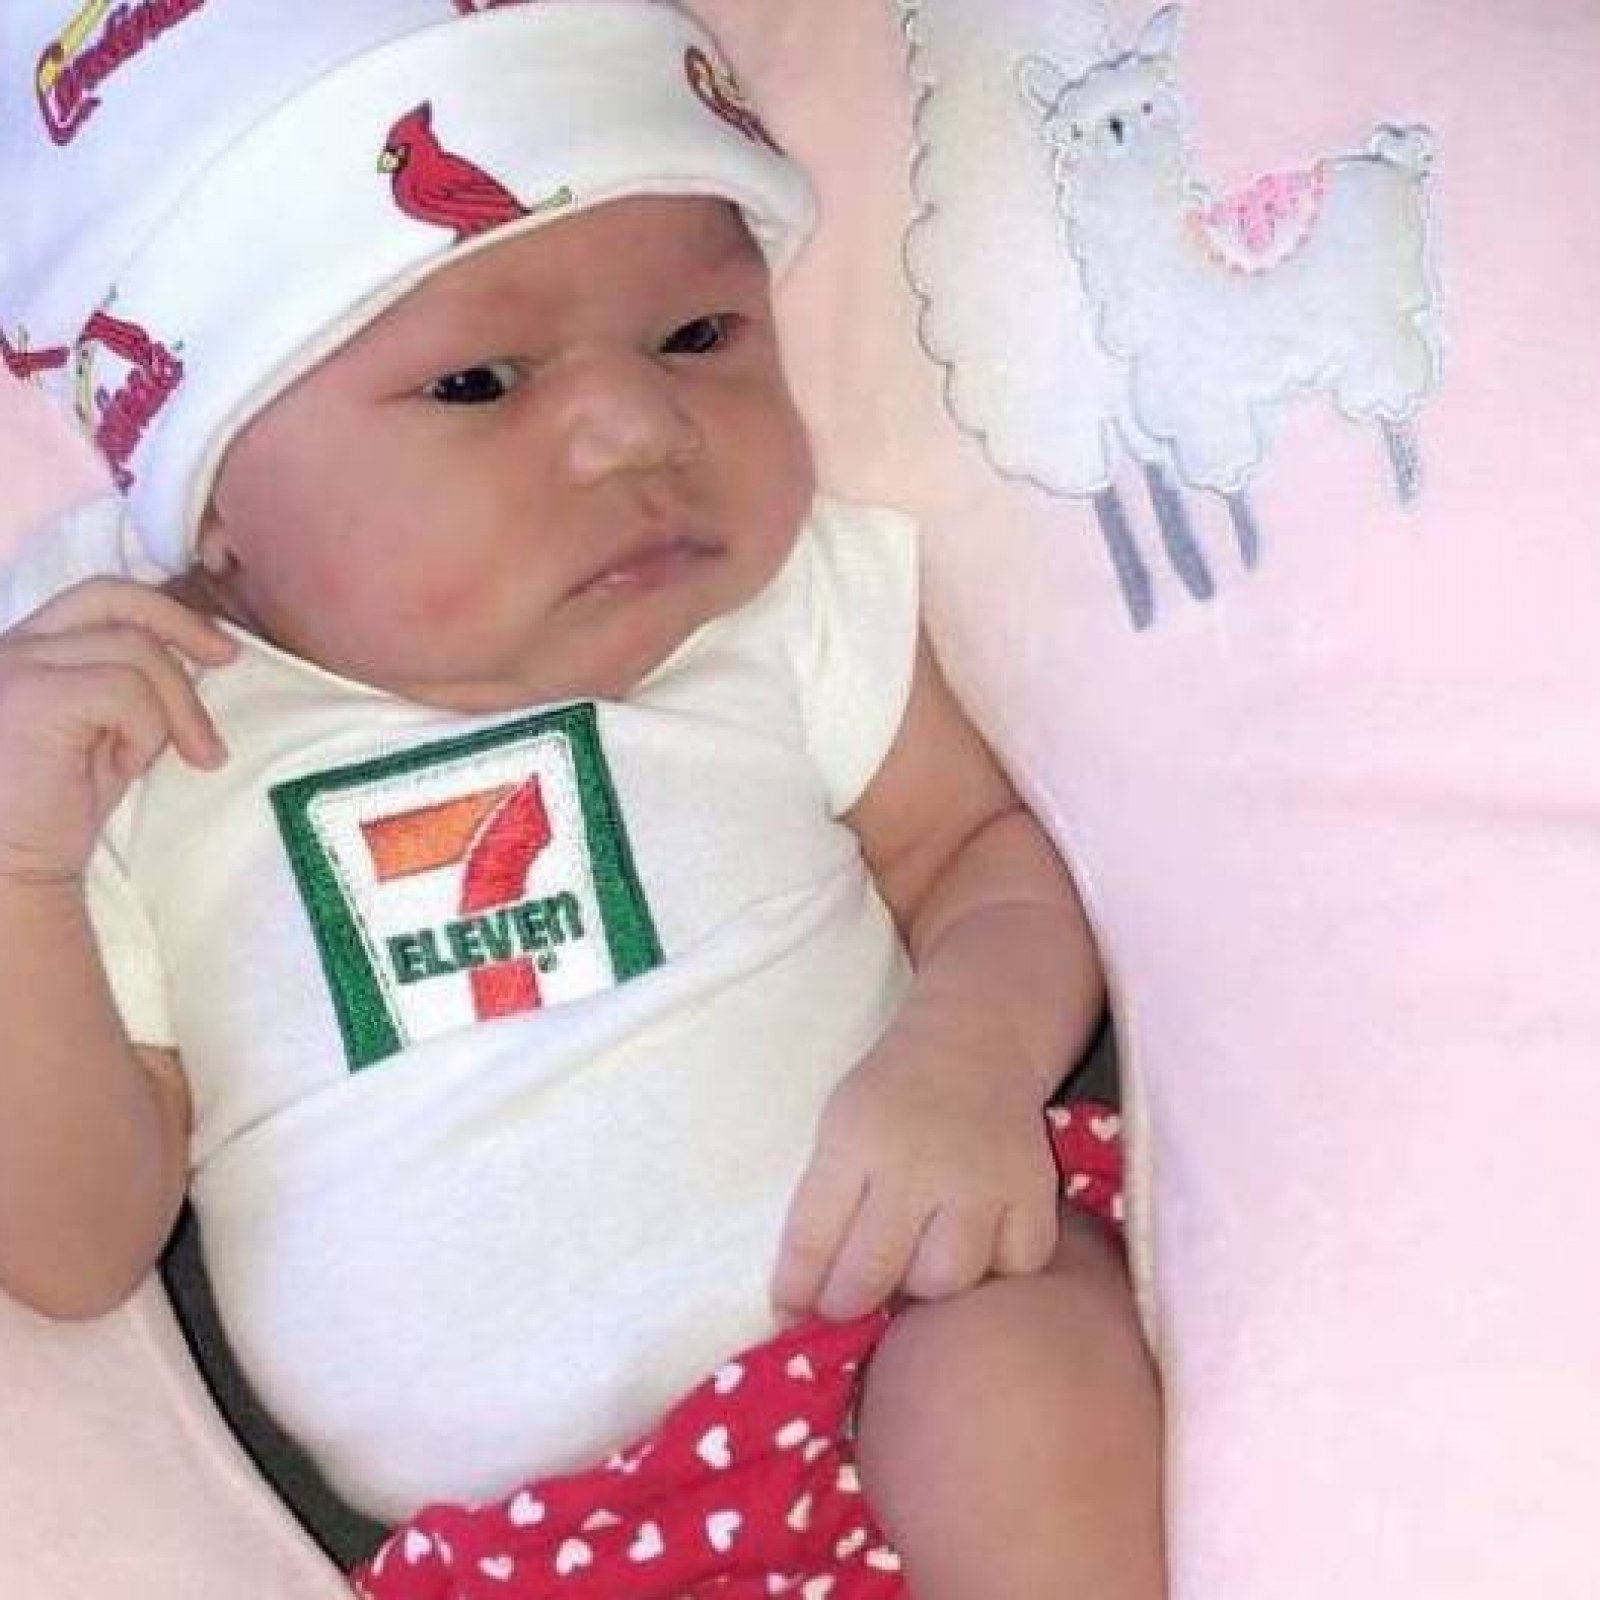 11 >> 7 Eleven Gives 7 111 To 7 Lb 11 Oz Baby Born At 7 11 On July 11